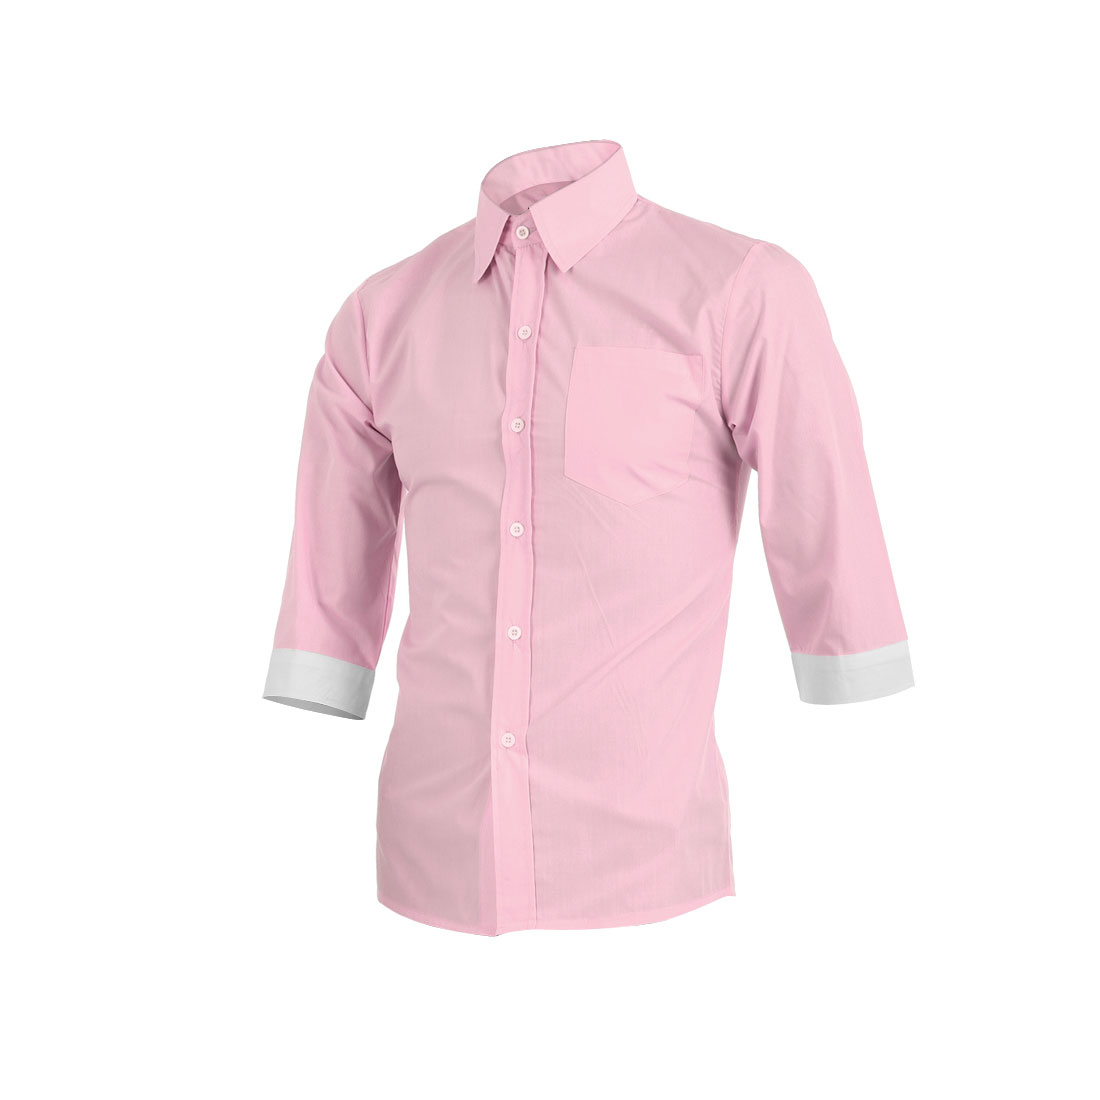 Men Three Quarter Sleeve Button Up Light Pink Shirt M